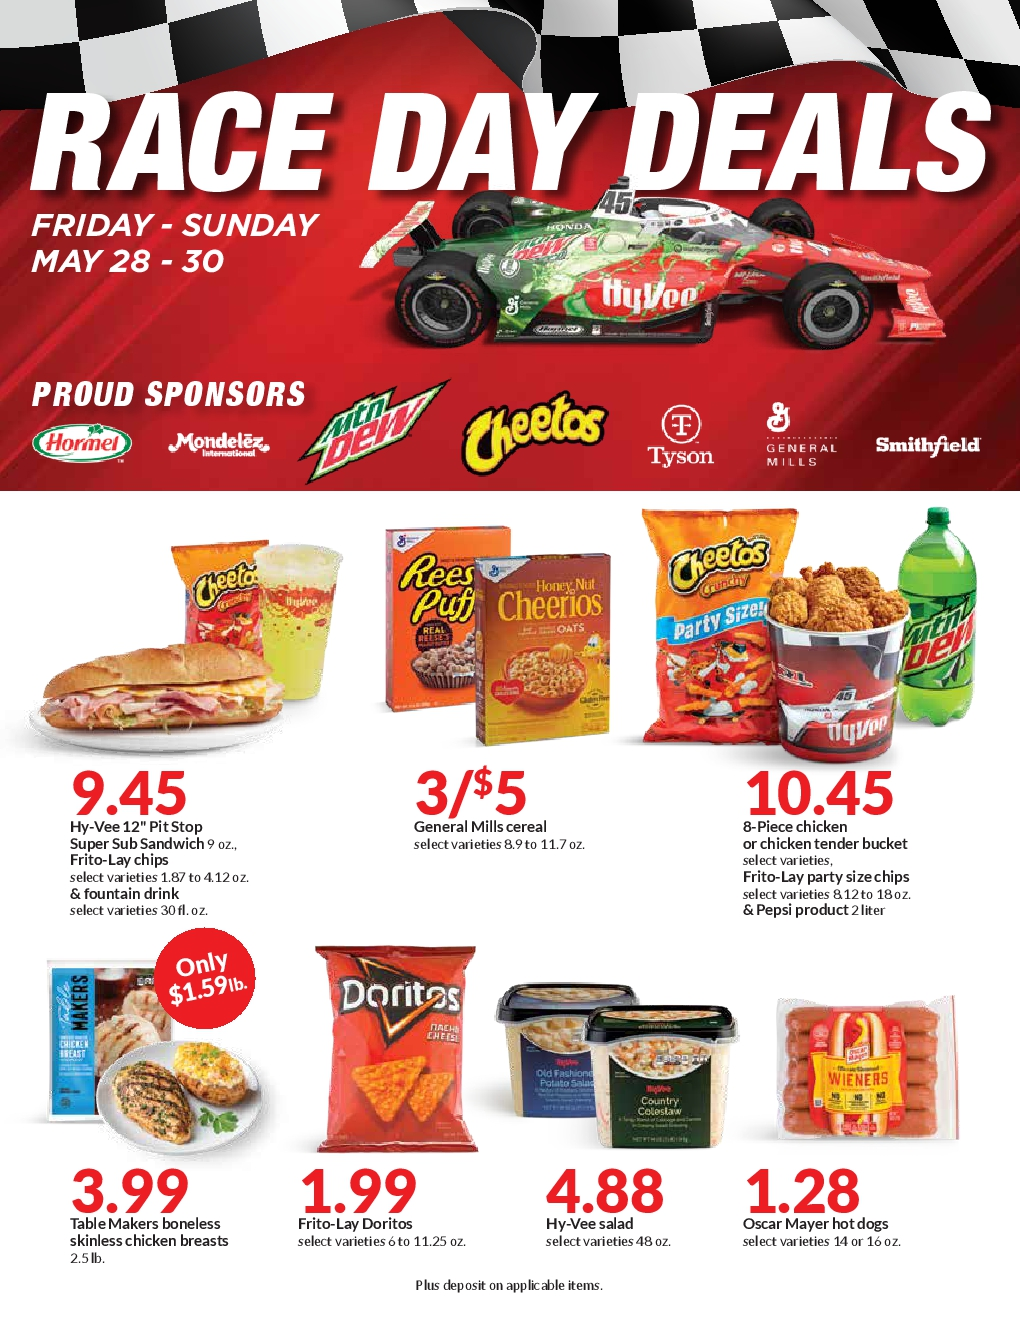 Hy vee 3-Day Race Day Deals 5/28/2021 - 5/30/2021